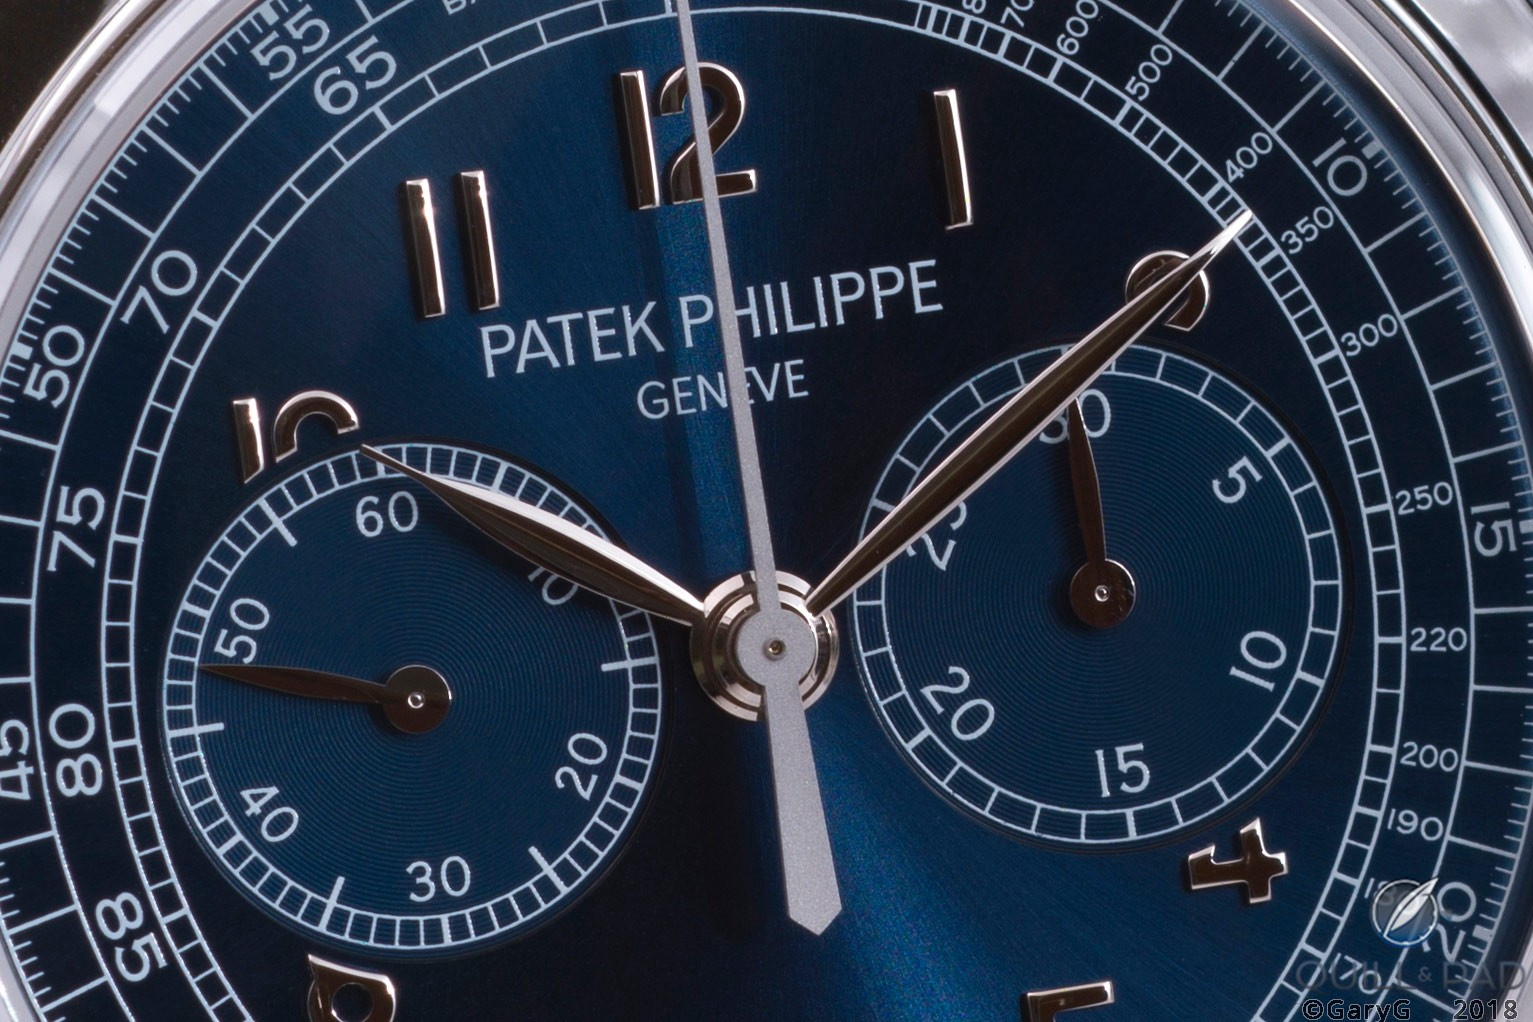 Dial detail, Reference 5070P-013 chronograph